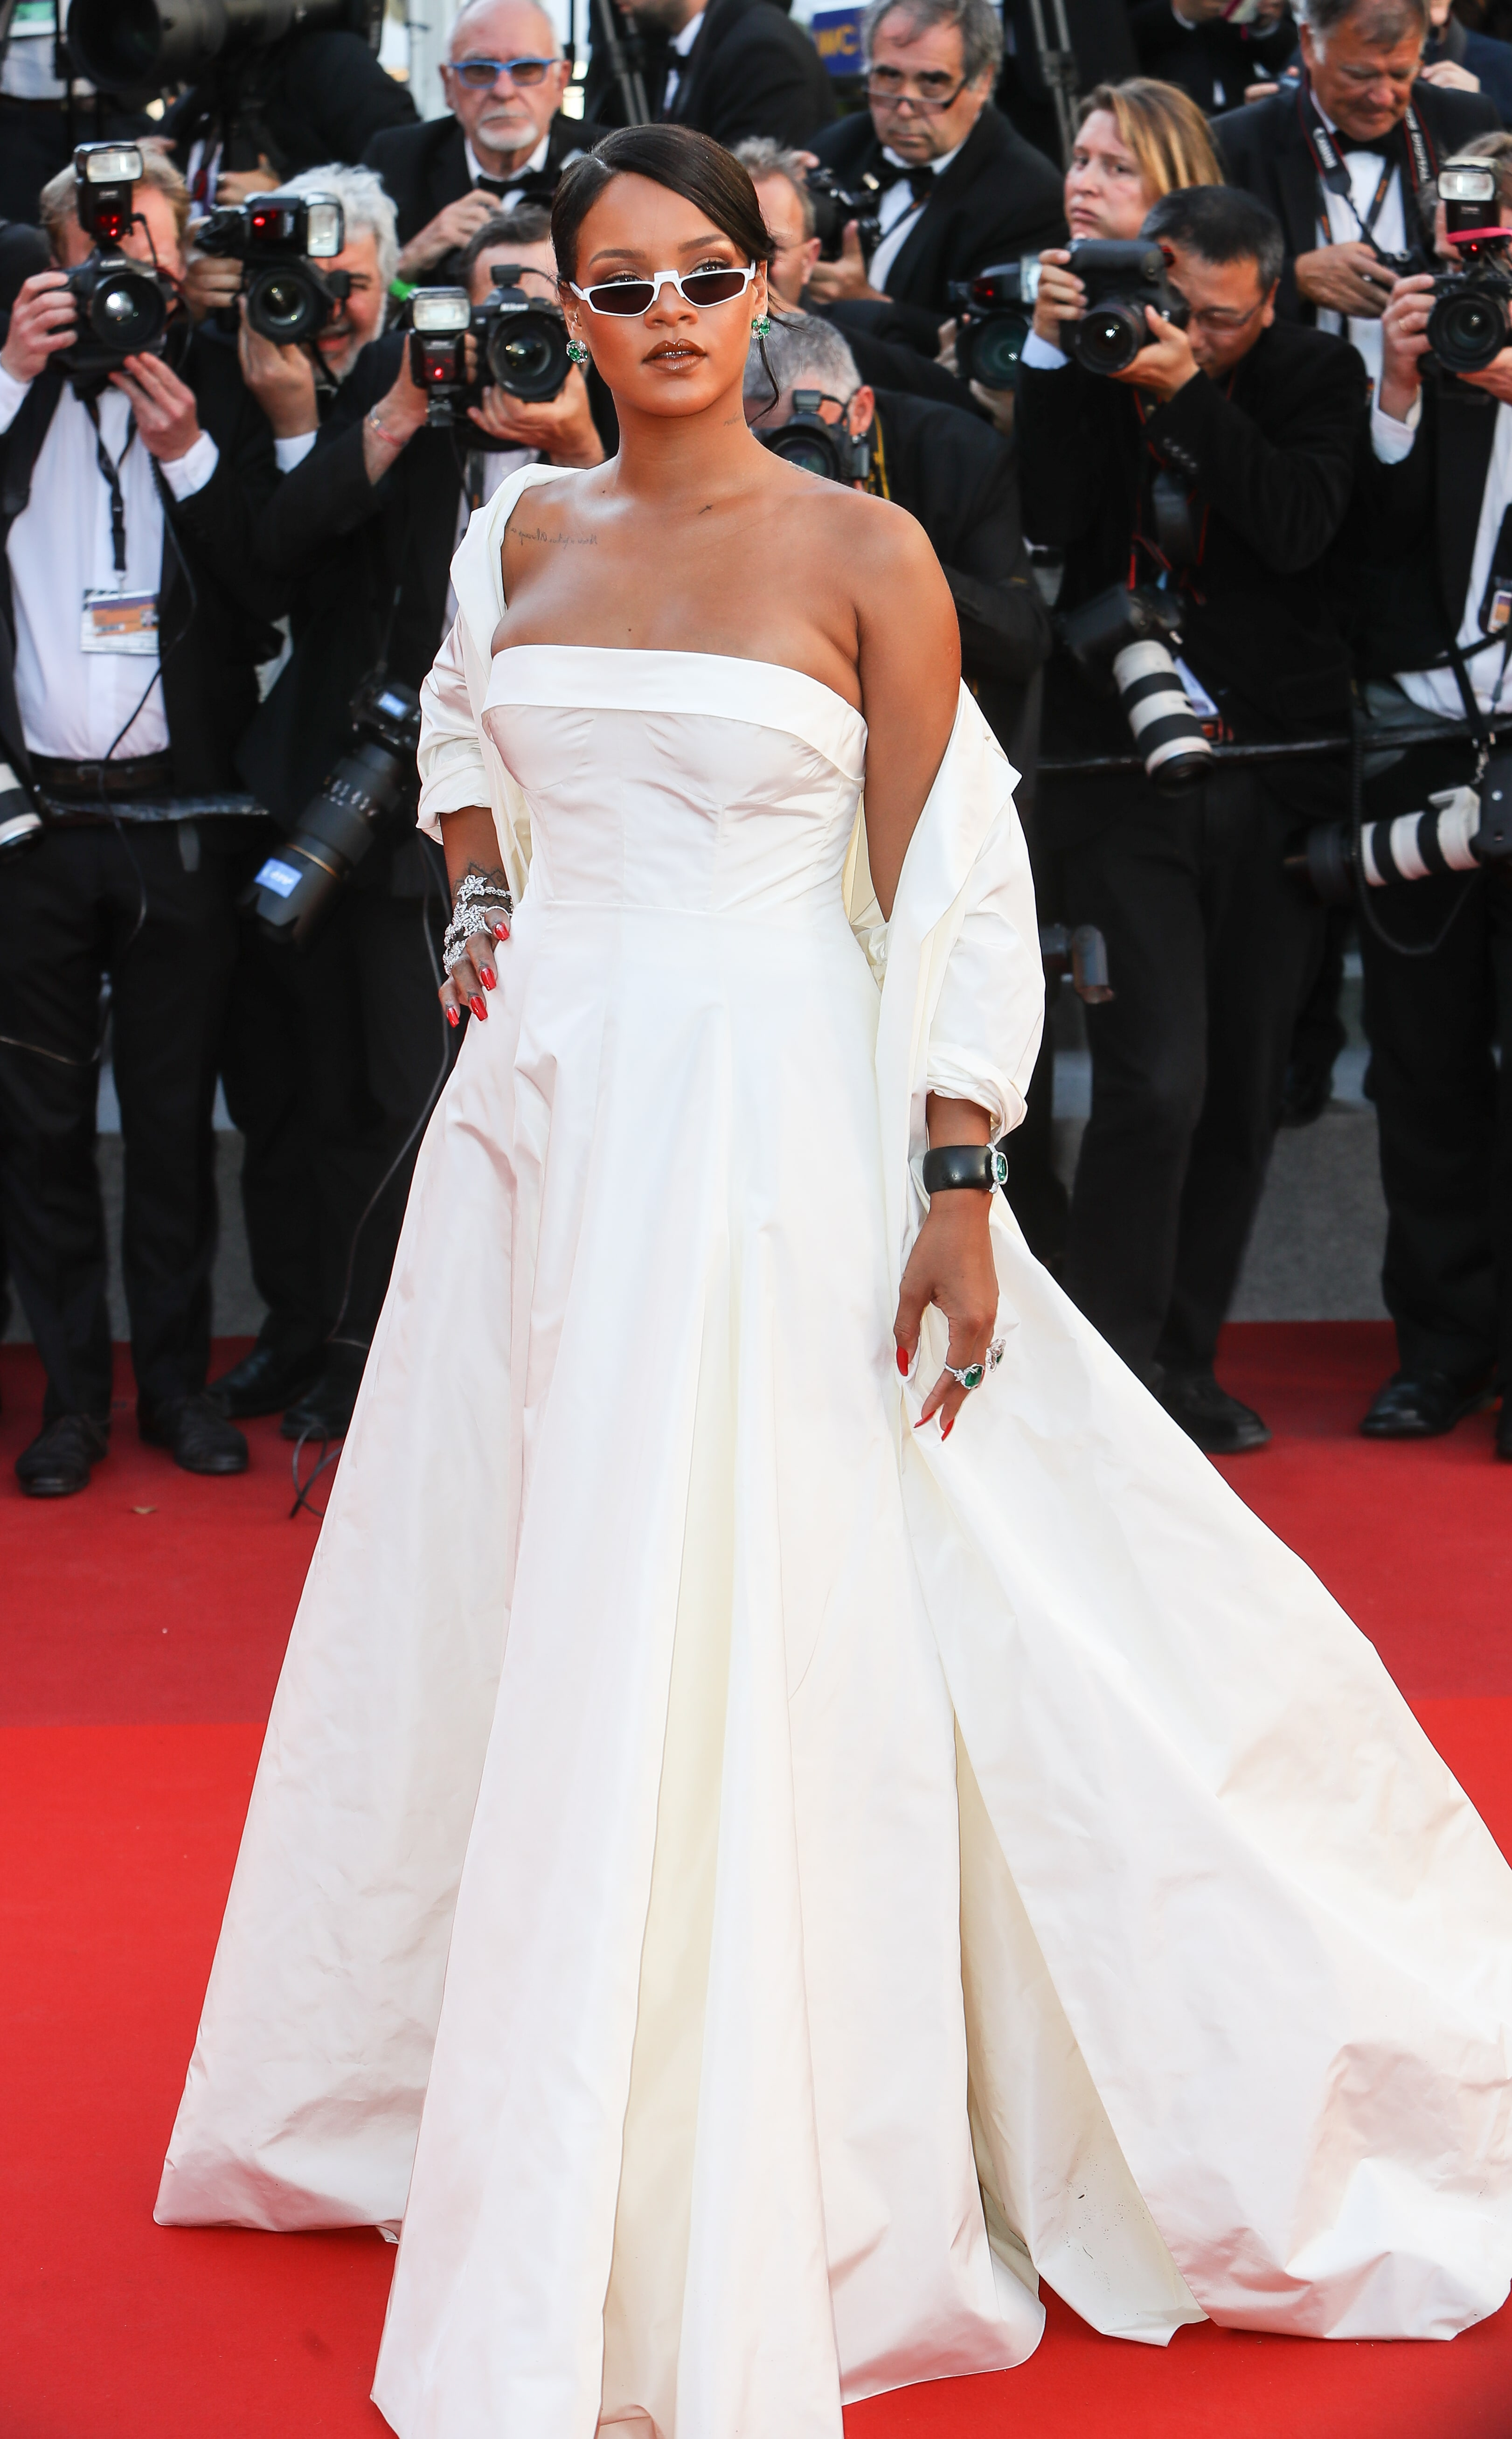 Unapologetically Fierce: Rihanna's 15 Best Red Carpet ...